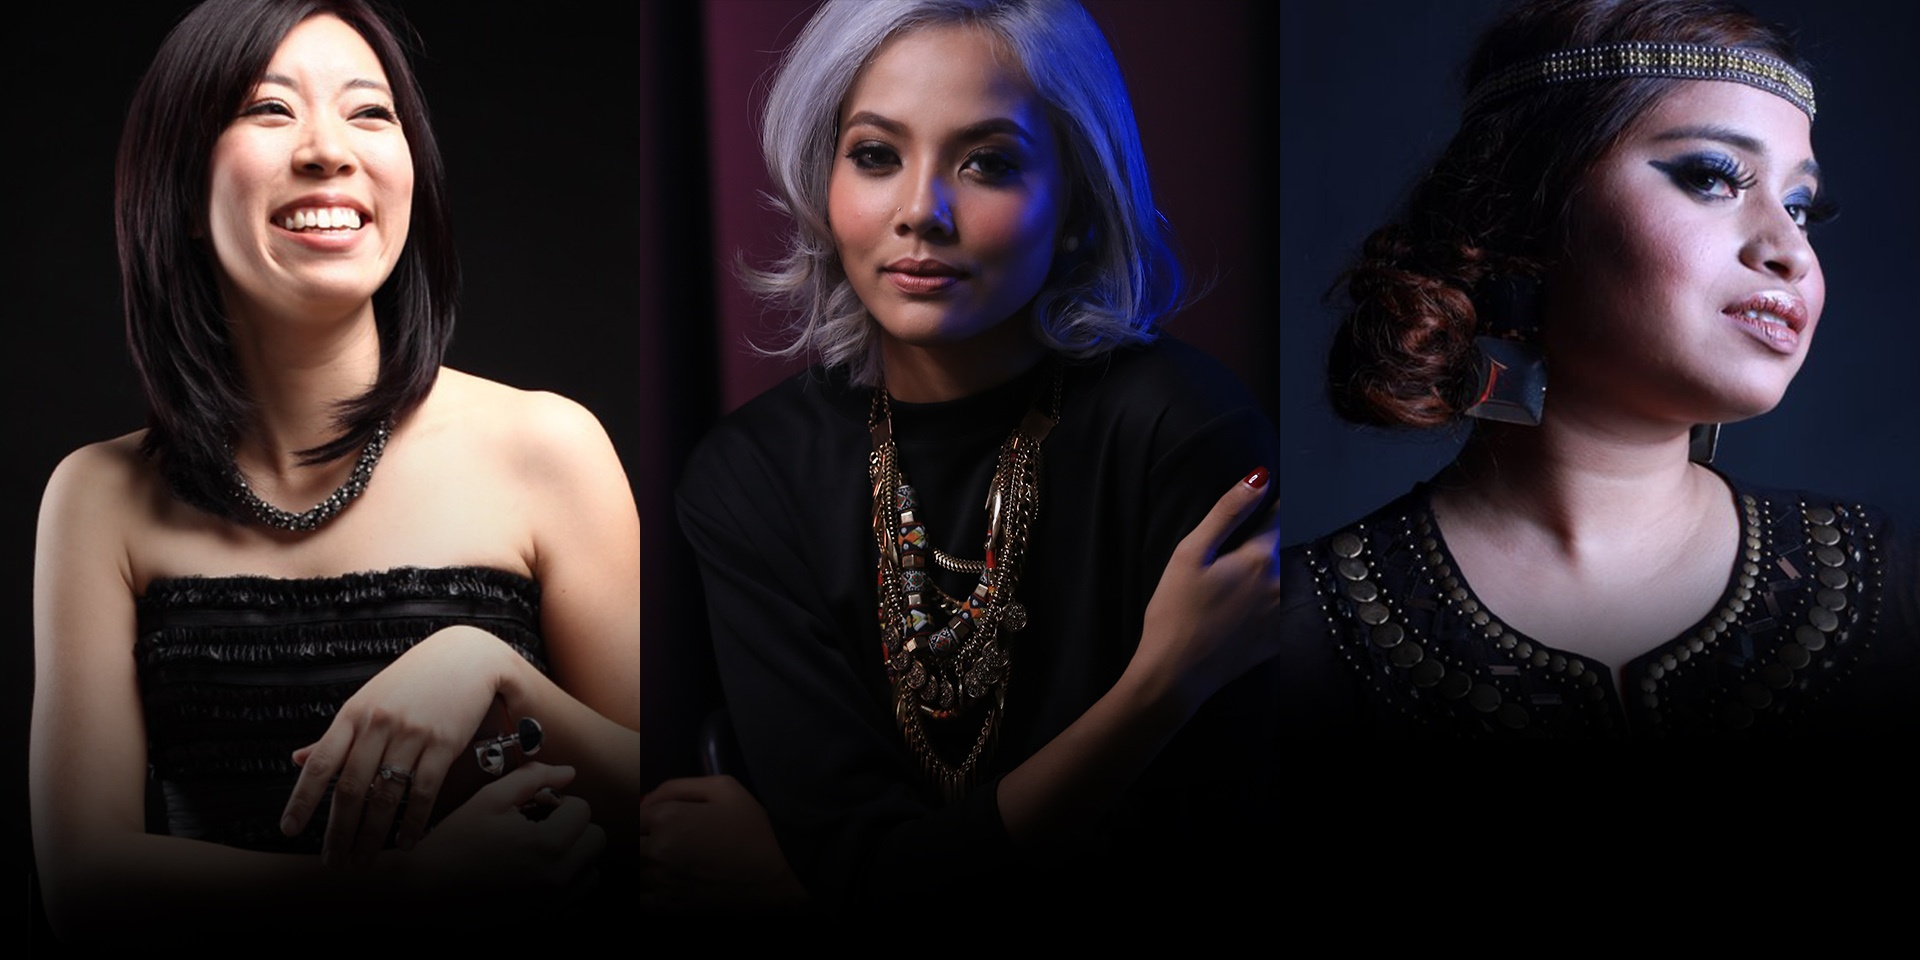 Corrinne May to perform at Marina Bay Sands with Aisyah Aziz and Roze Kasmani